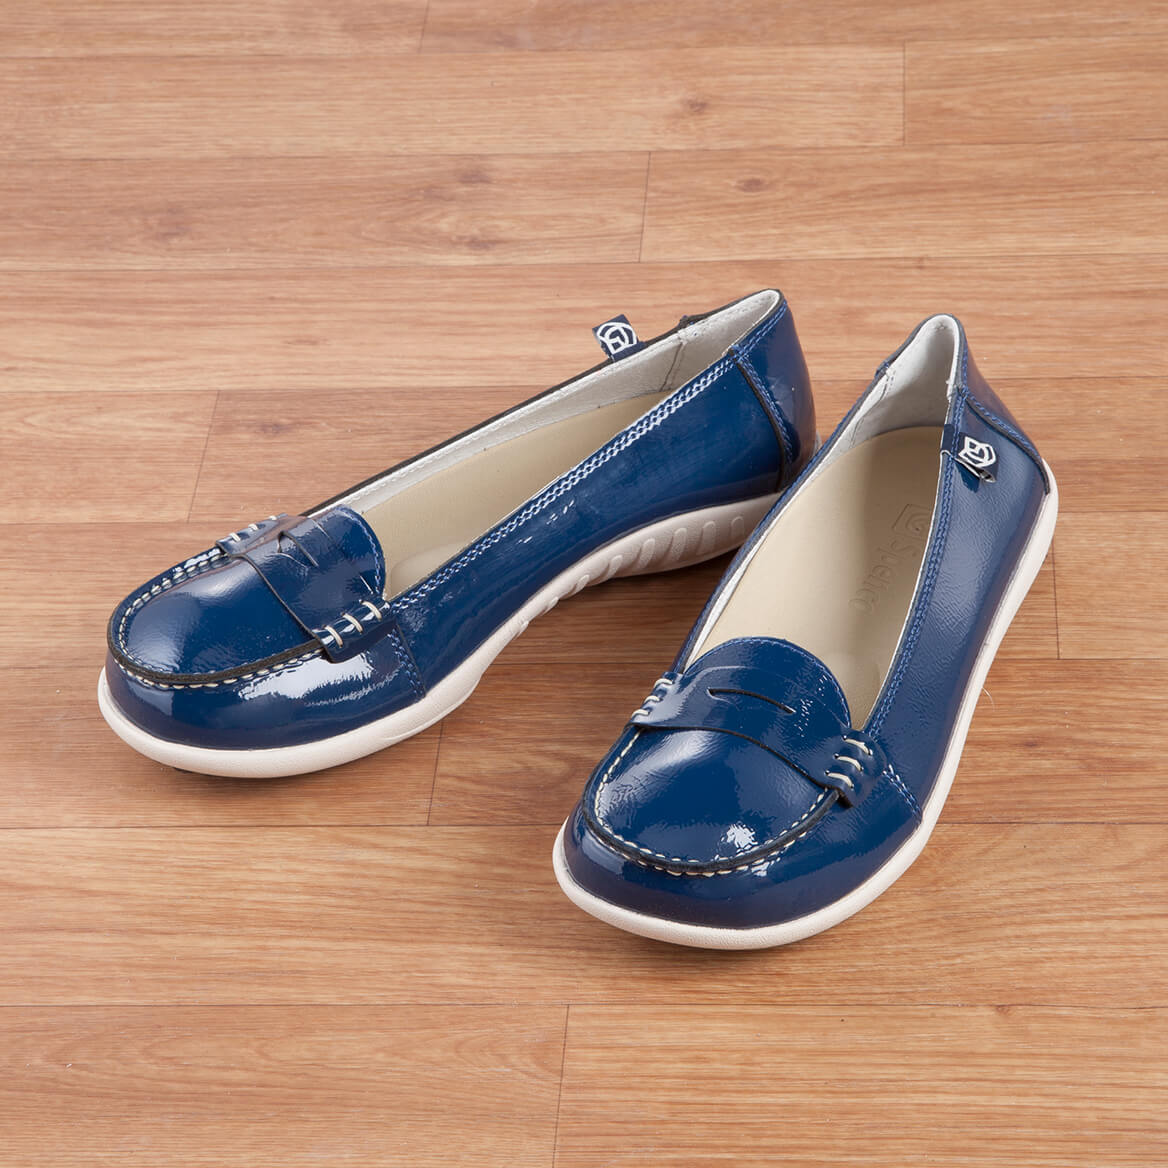 b86bea549cf Spenco Siesta Penny Patent Leather - Loafer Shoes - Miles Kimball